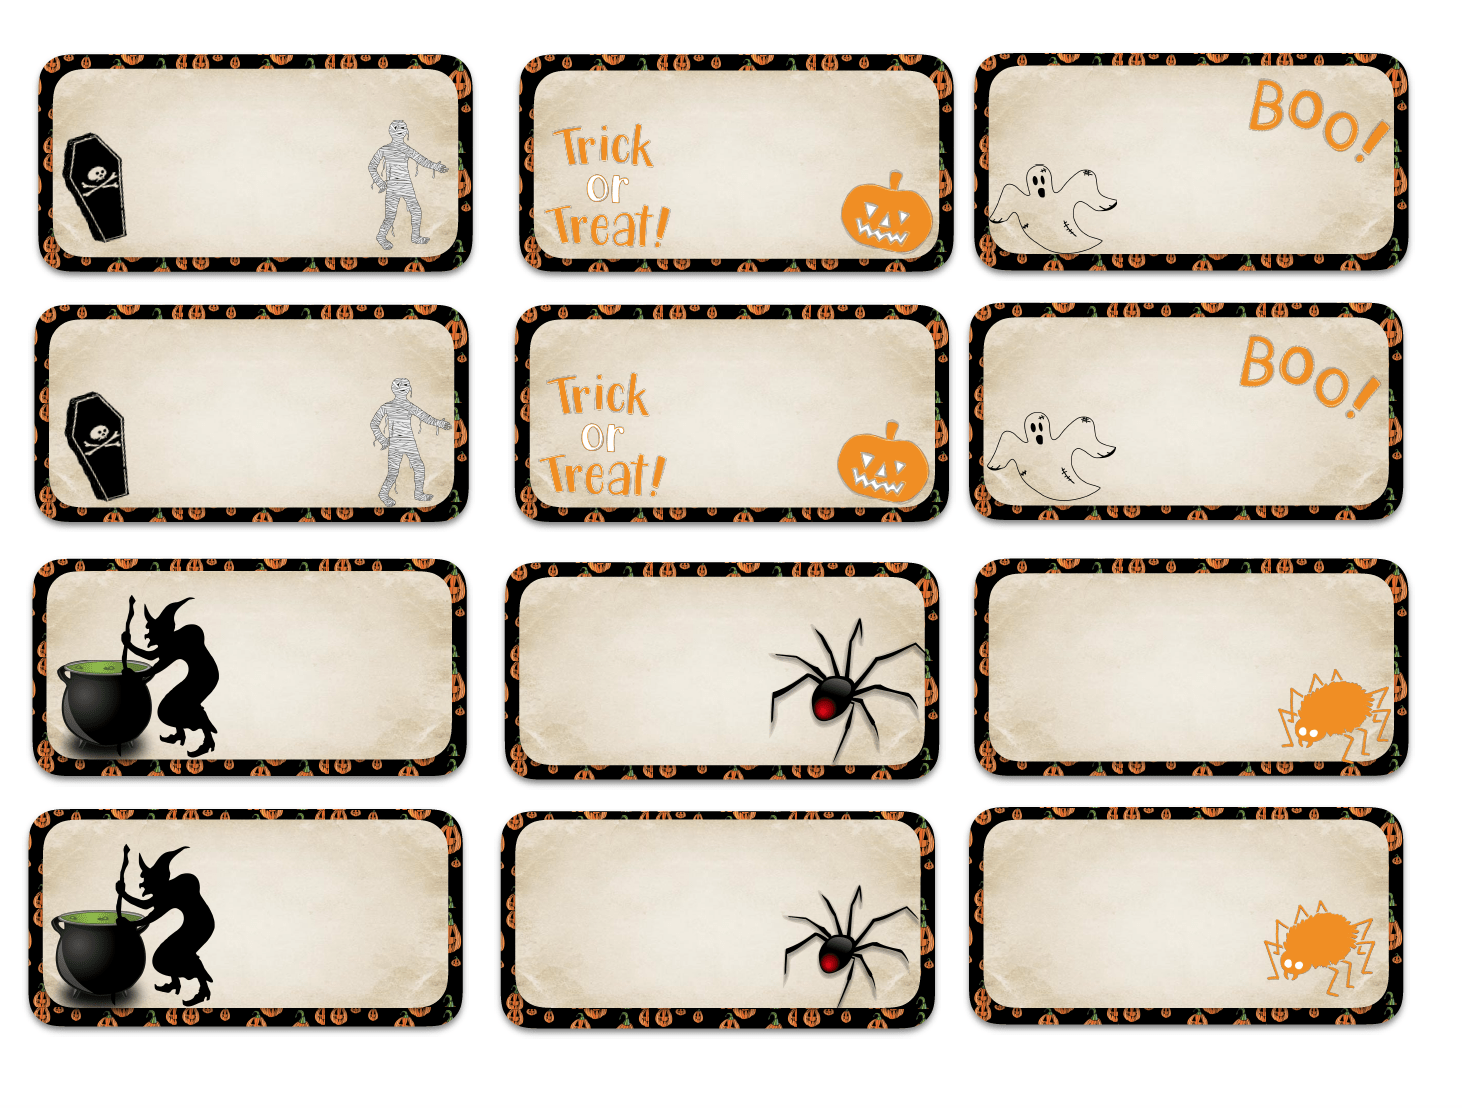 "Halloween designed labels. Multiple sizes (2"" x 1""; 3"" x 1 &1/2""; and 3"" x 2""), multiple designs. Great for labeling food, drinks, favors, etc."